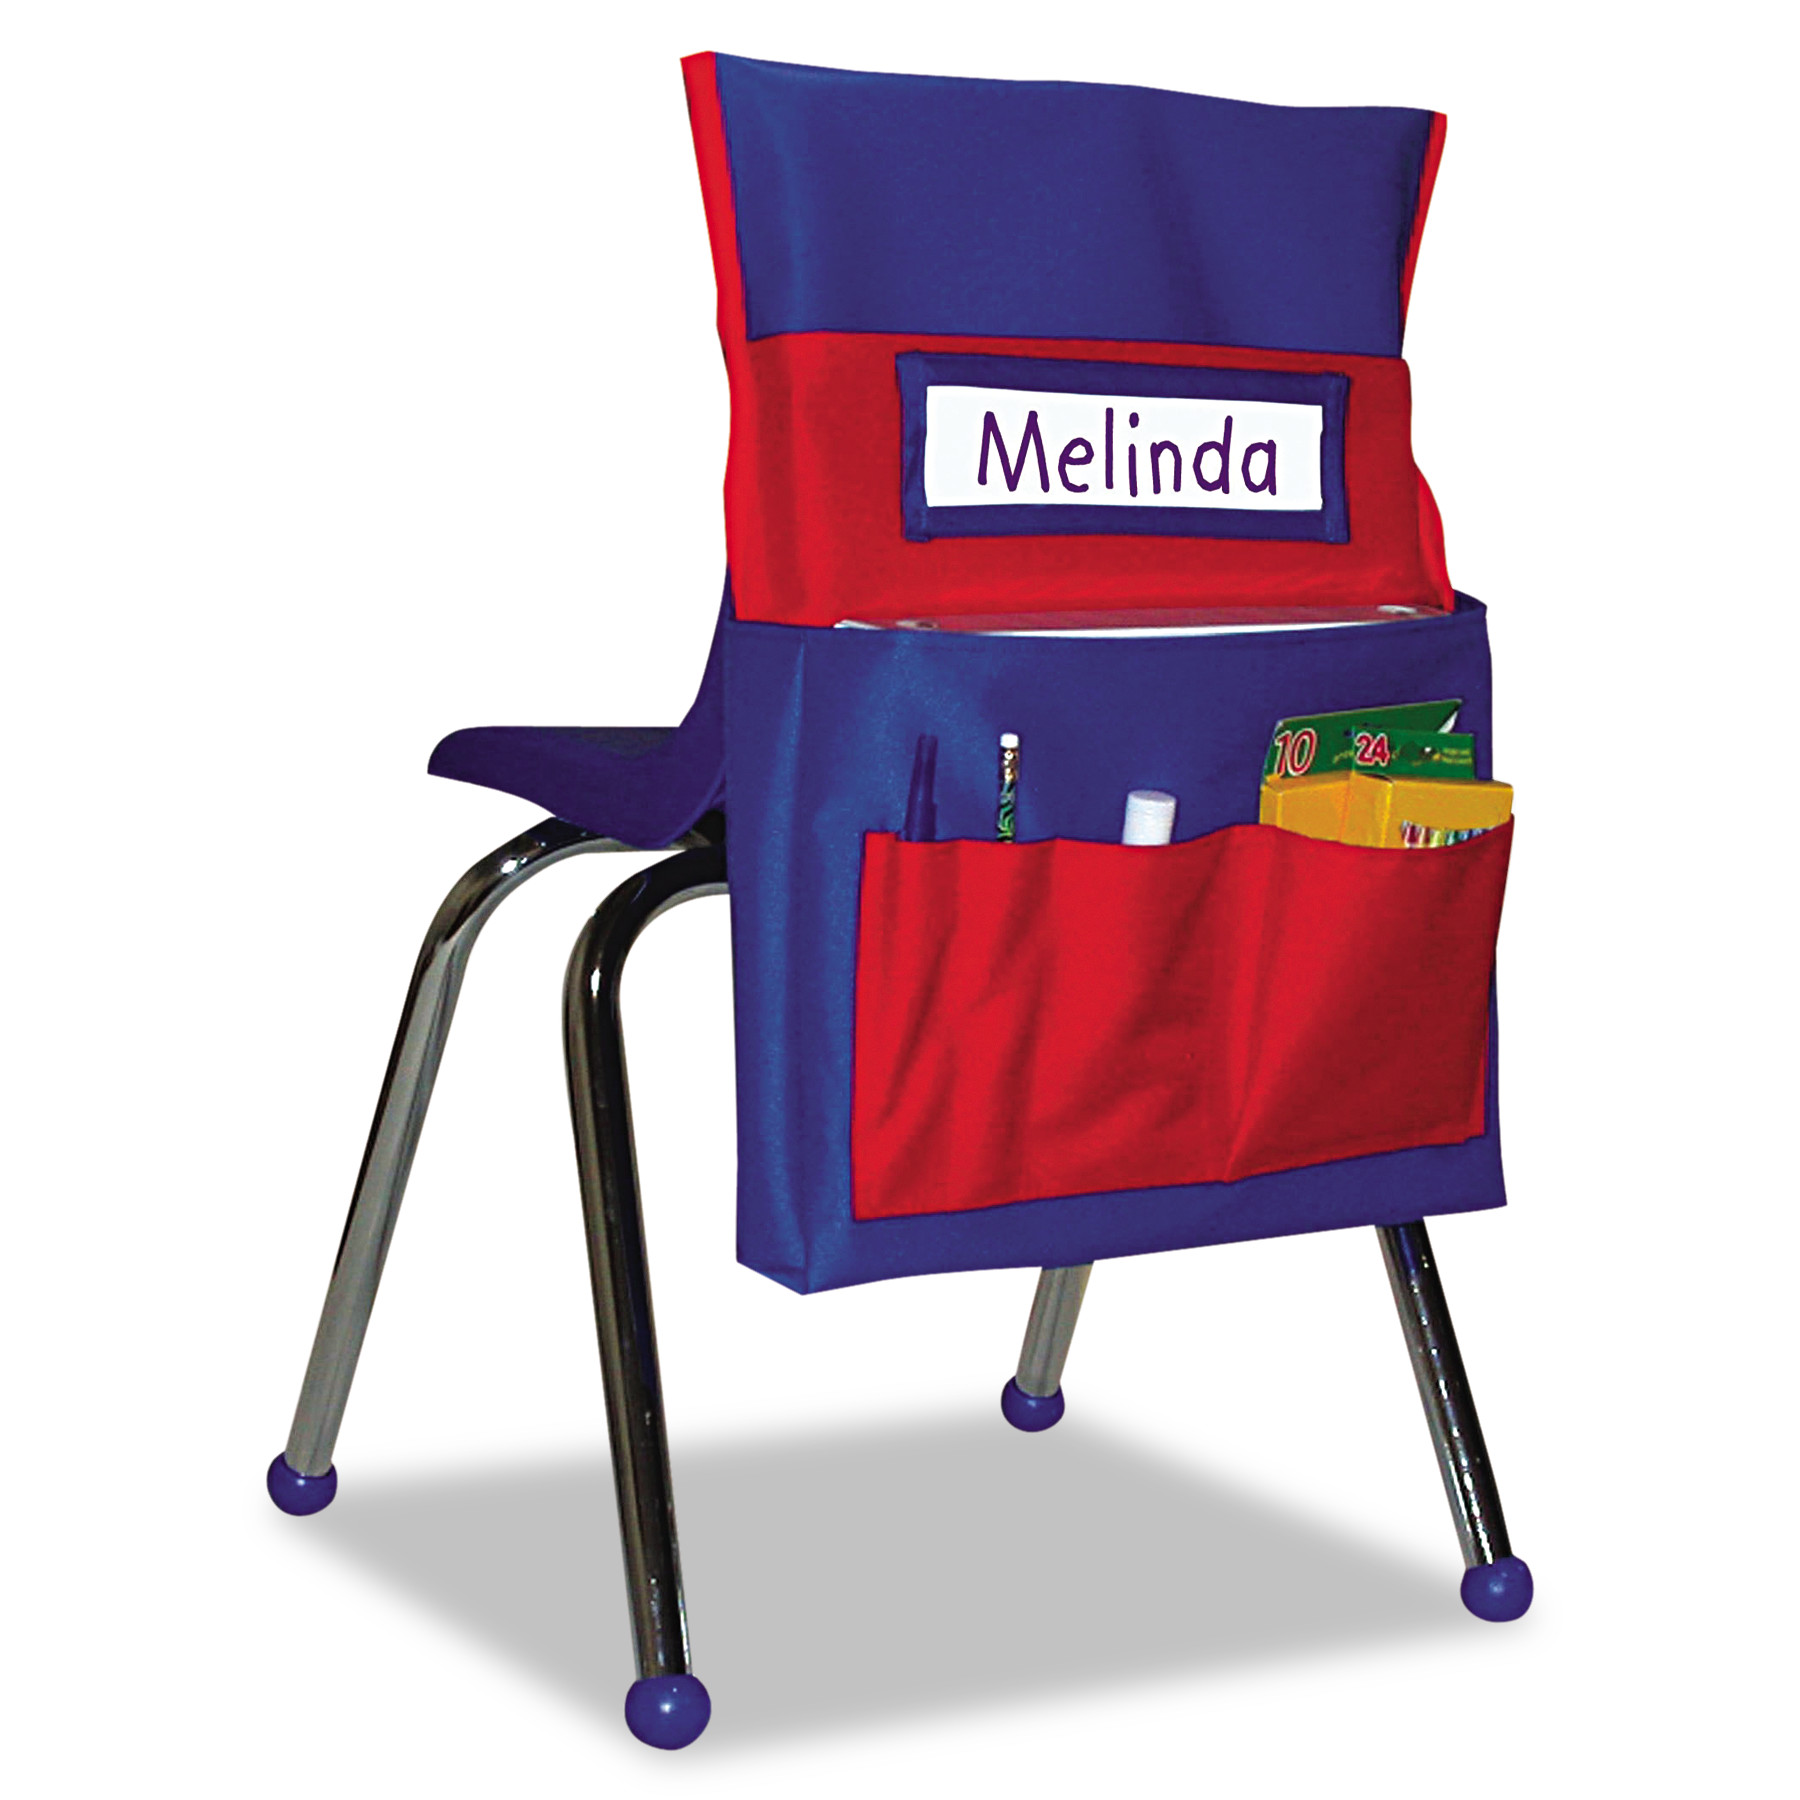 Carson-Dellosa Publishing Chairback Buddy Pocket Chart, 12 x 22 1/2, Blue/Red